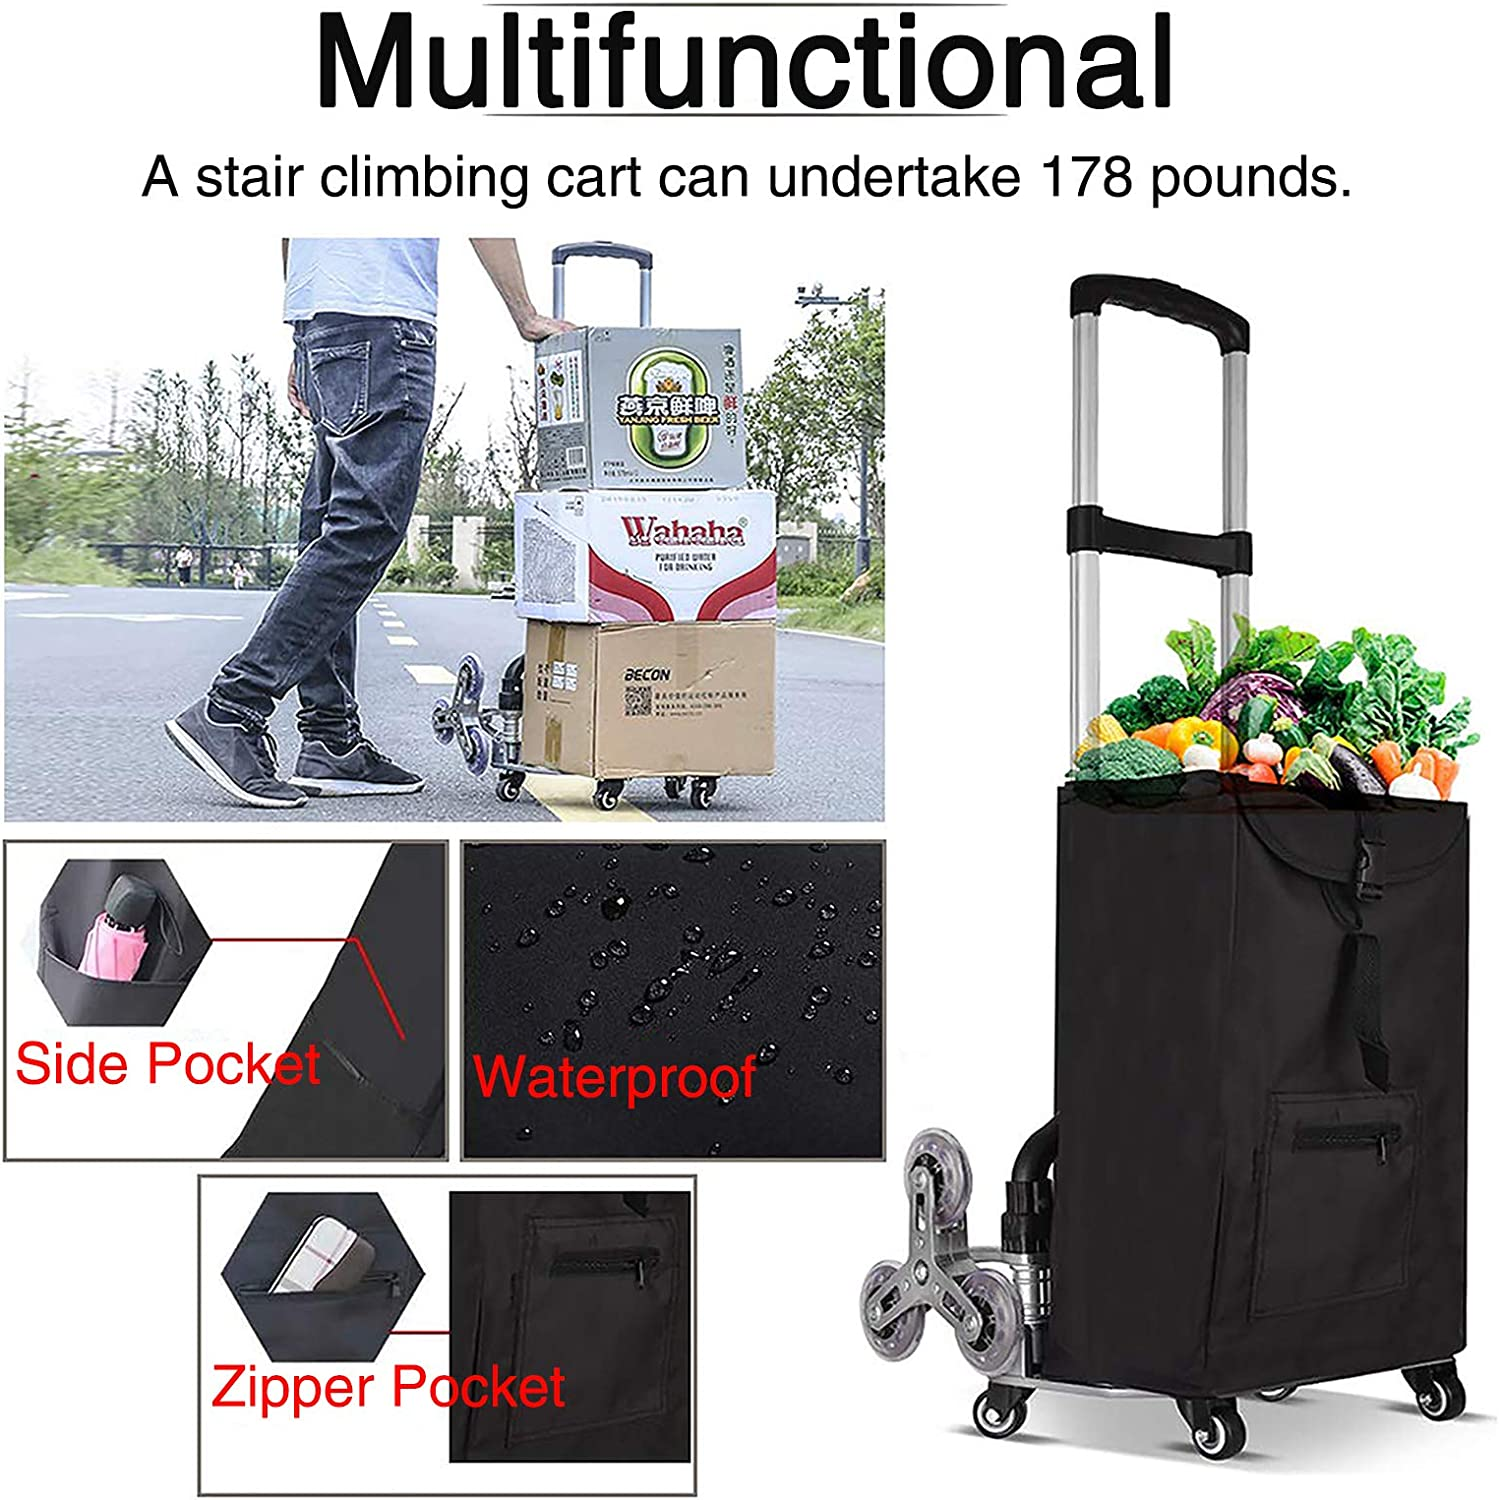 Stair Climbing Cart WOQED Stair Cart Folding Hand Truck Aluminum Alloy 10-Wheel Trolley Folding All Terrain Lightweight Hand Truck Quiet Large Tires with Bag Required Luggage Moving Outdoor